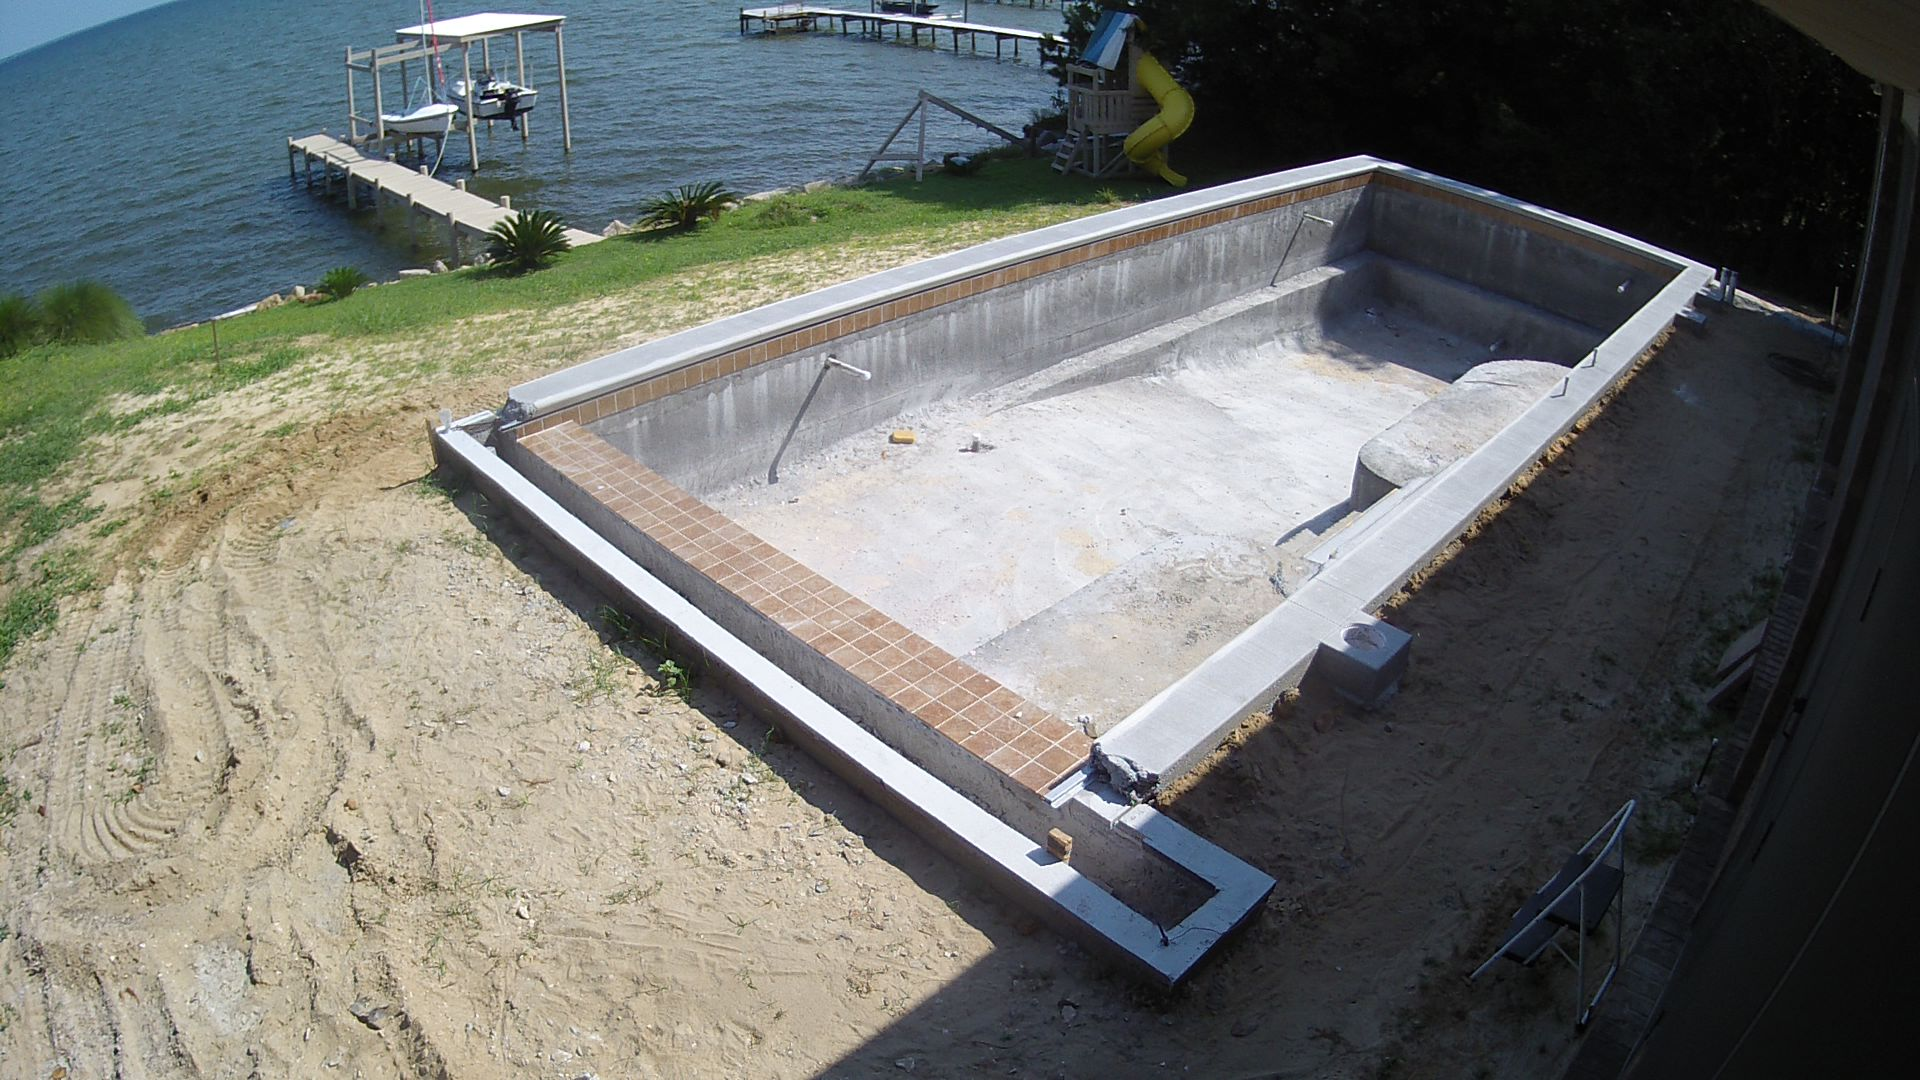 New pool pensacola fl page 3 for Tallahassee pool builders